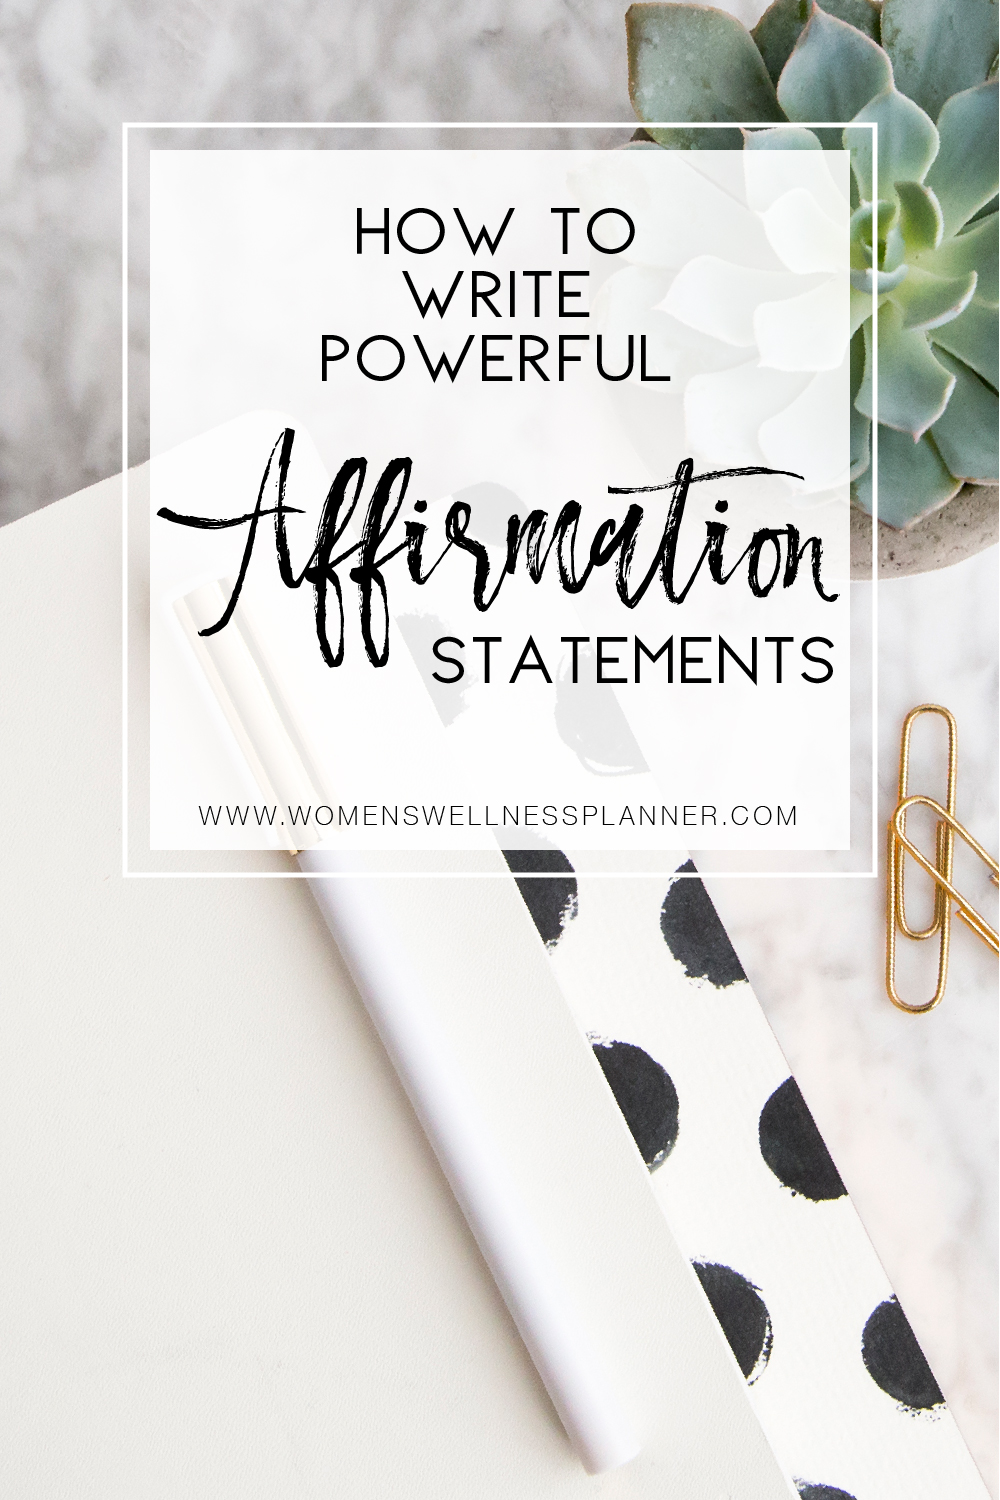 How to Write Powerful Affirmation Statements  |  Women's Wellness Planner Blog